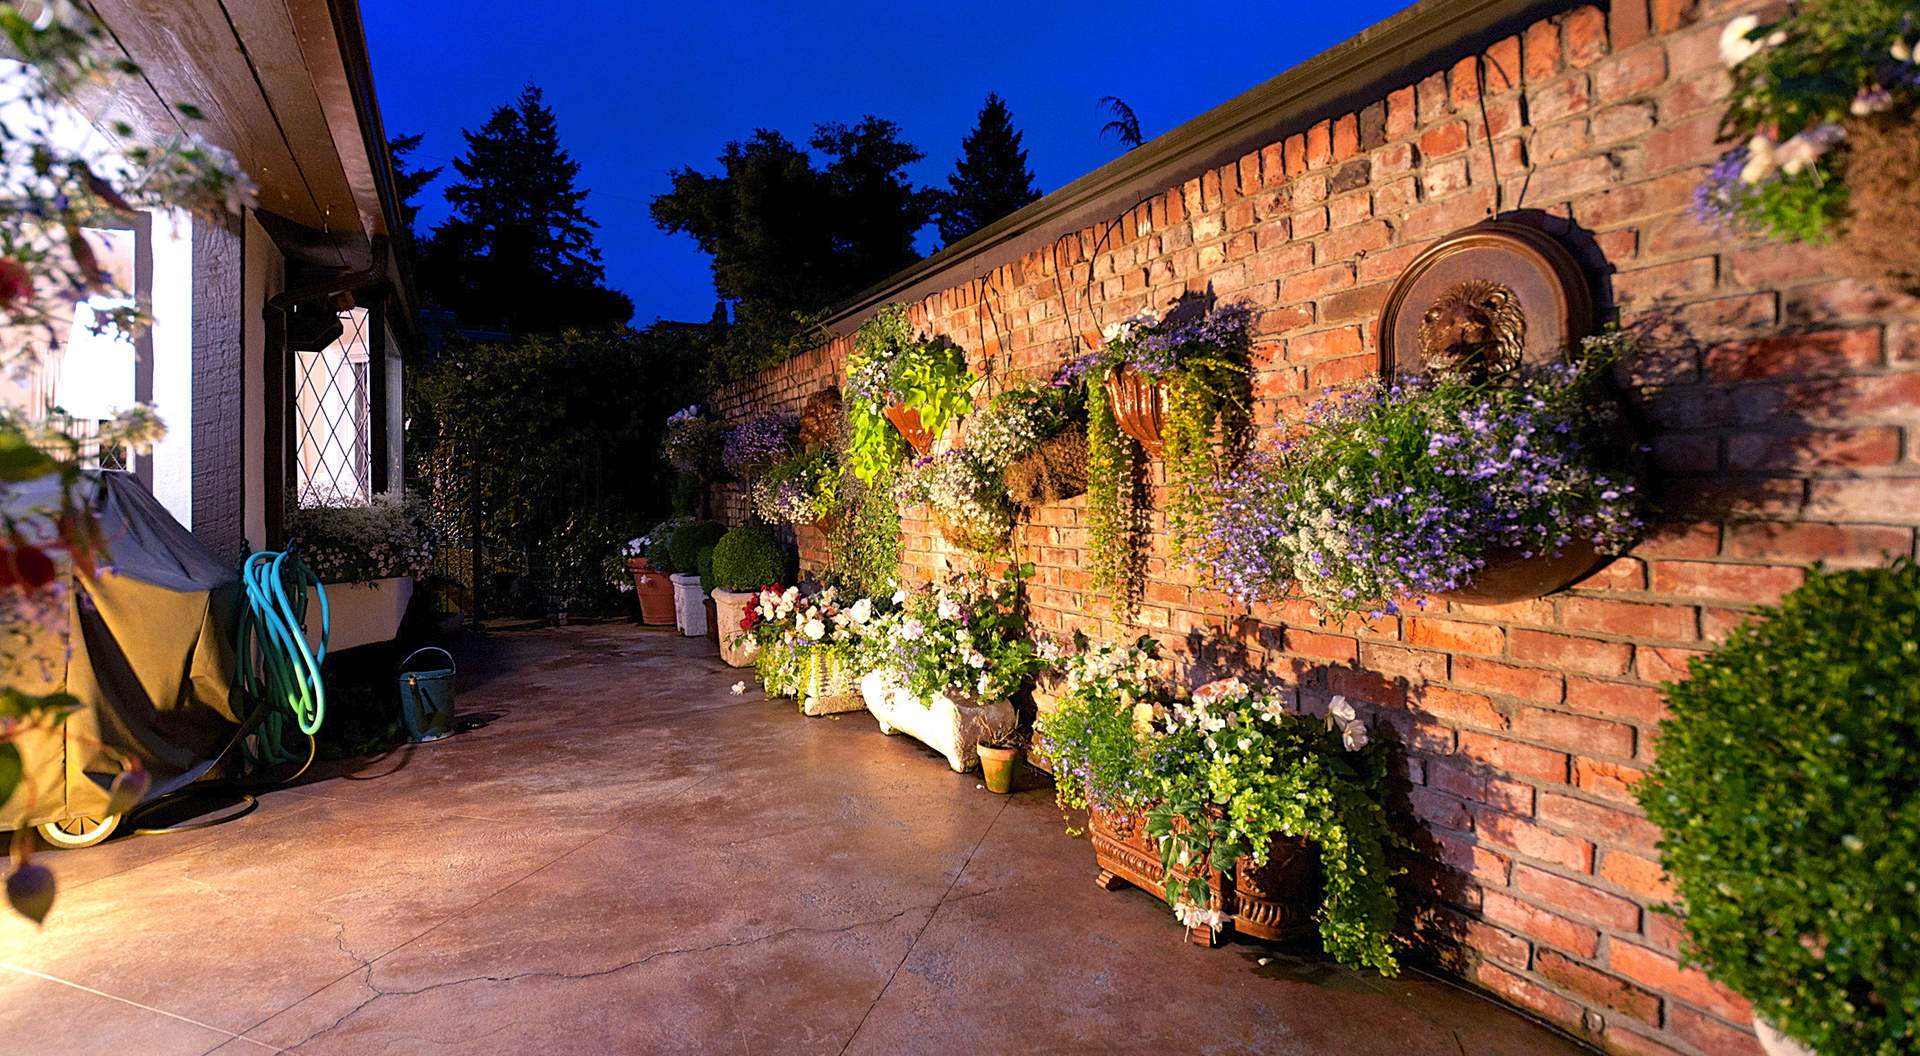 Sensational Gardens & Intimate Patios